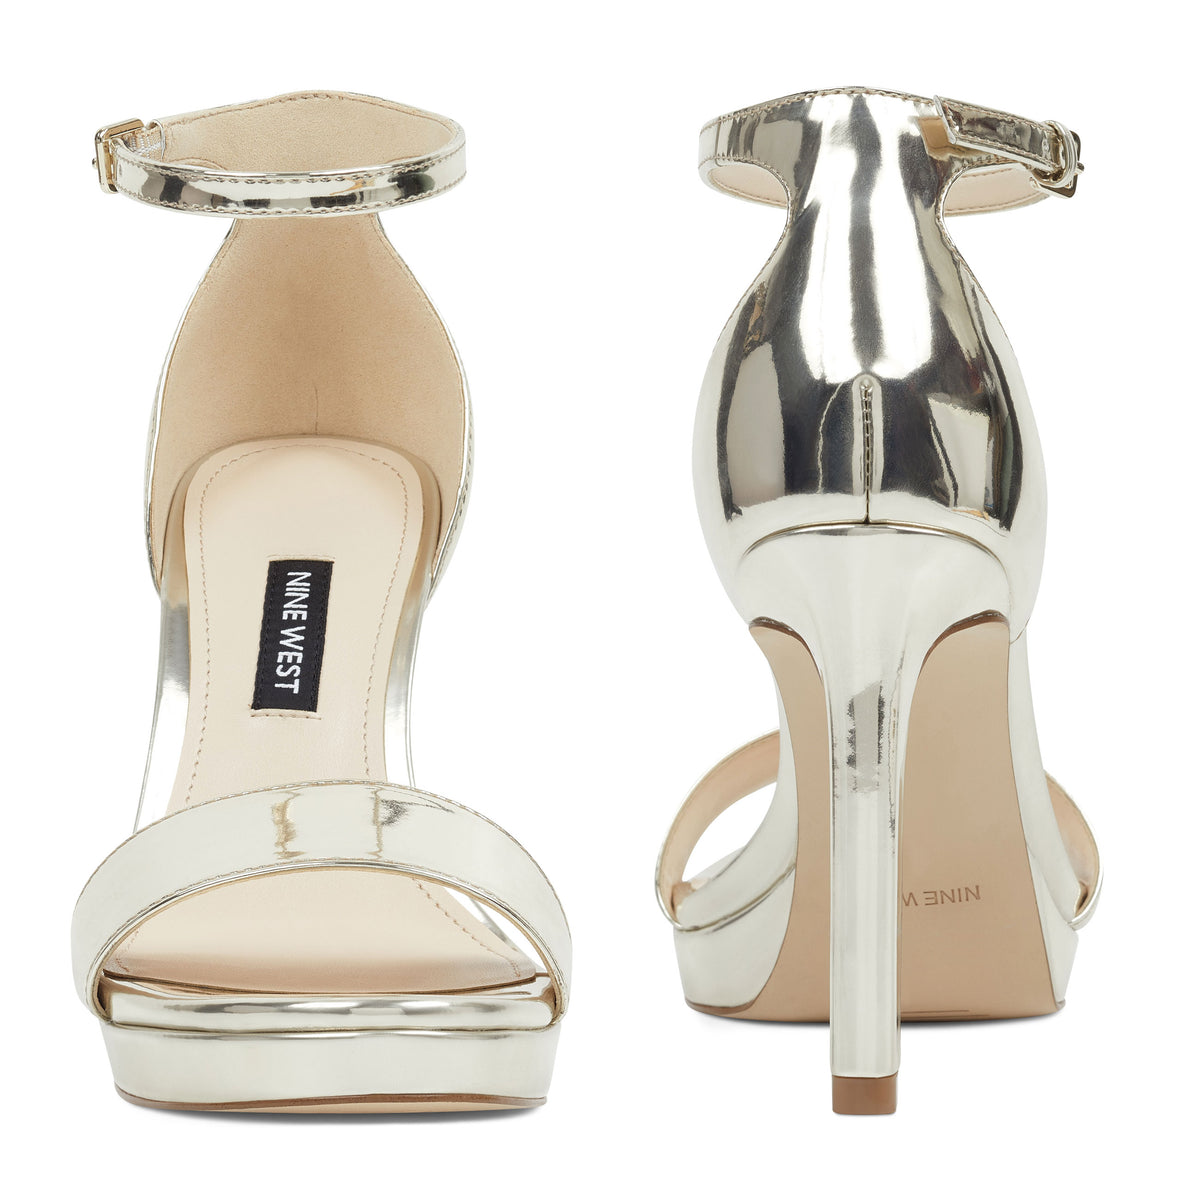 edyn-ankle-strap-sandals-in-gold